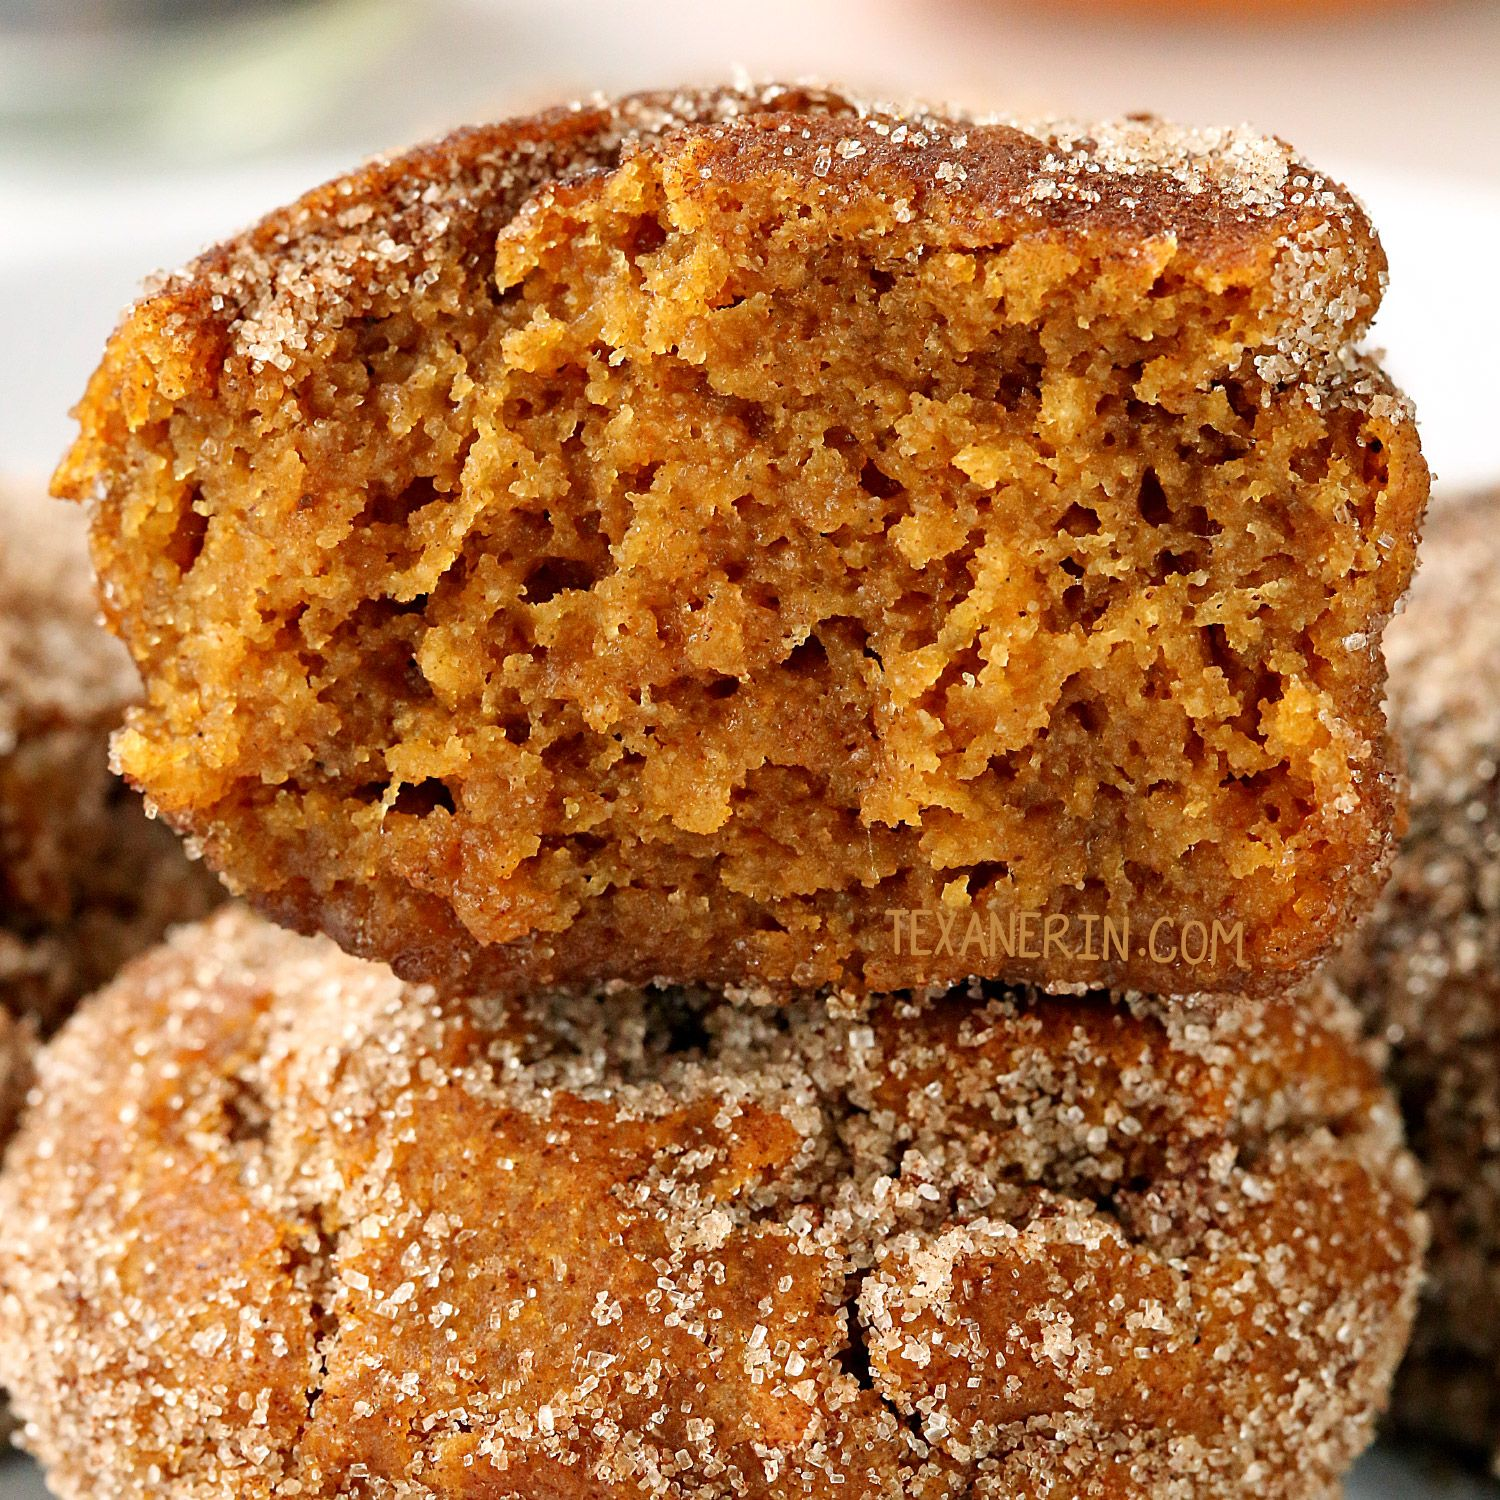 These Vegan Pumpkin Muffins Can Be Made With Gluten Free Whole